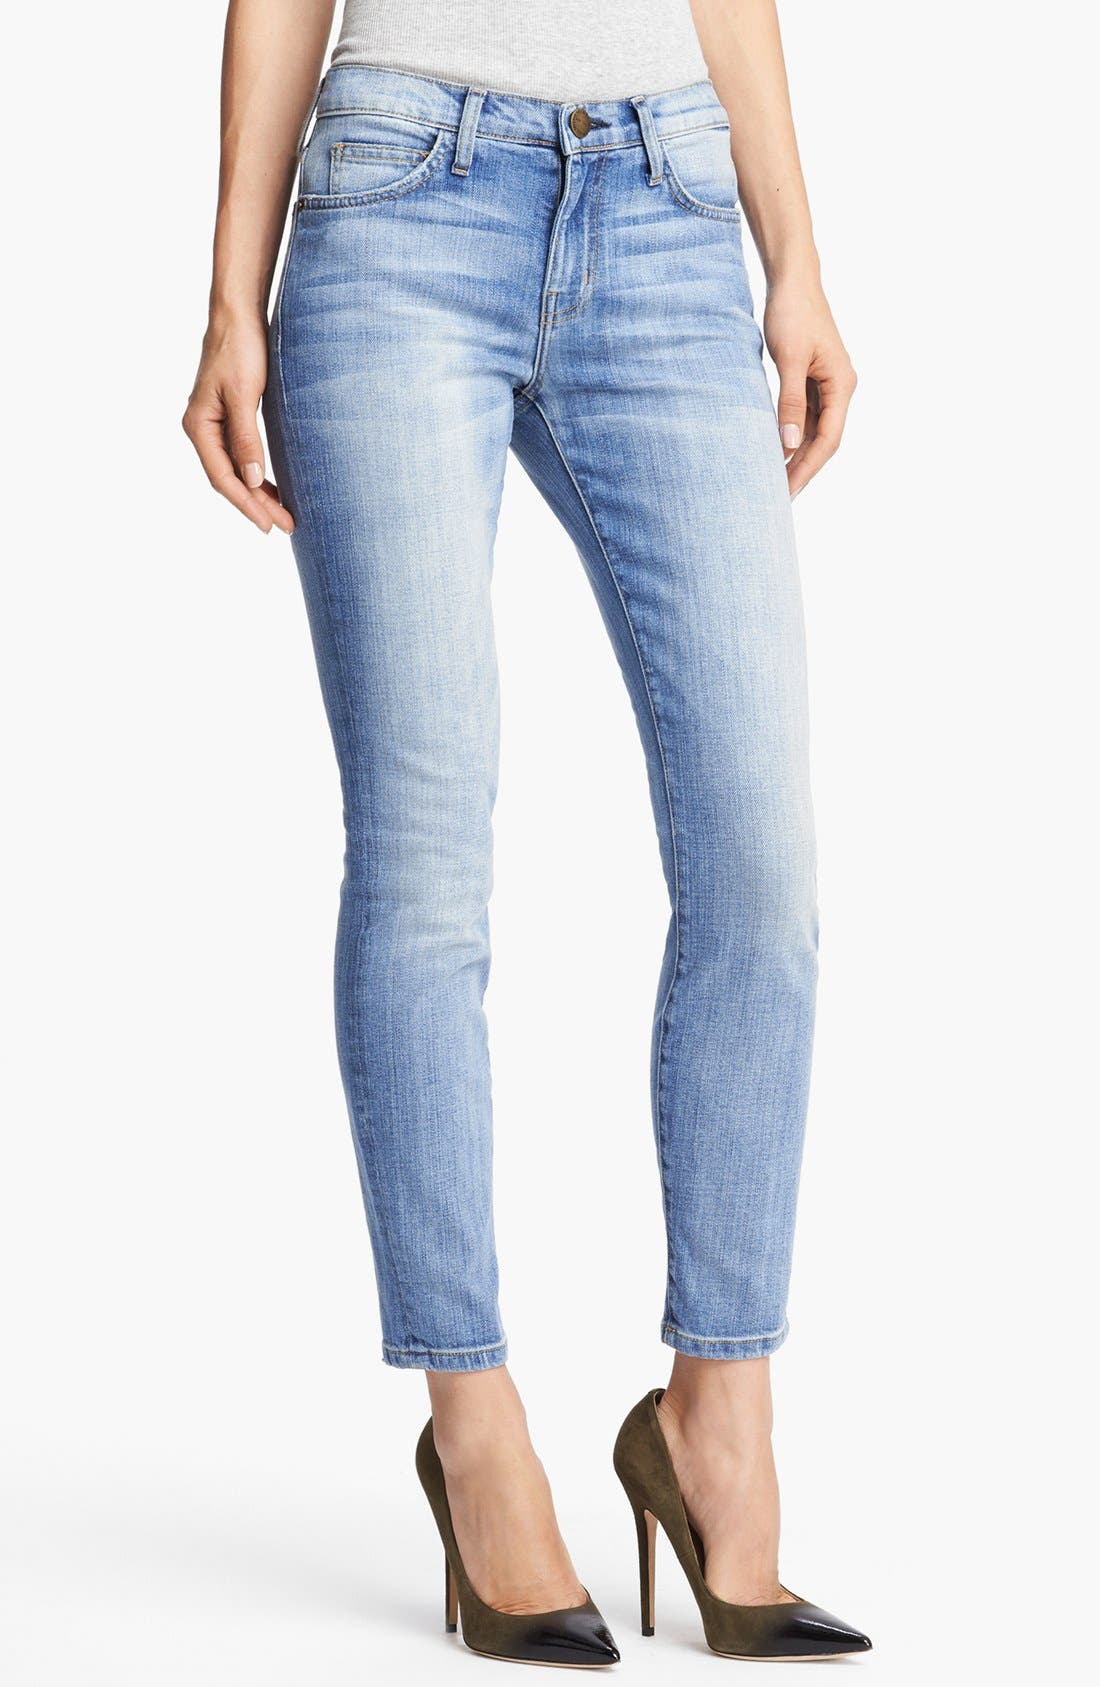 Alternate Image 1 Selected - Current/Elliott 'The Stiletto' Stretch Jeans